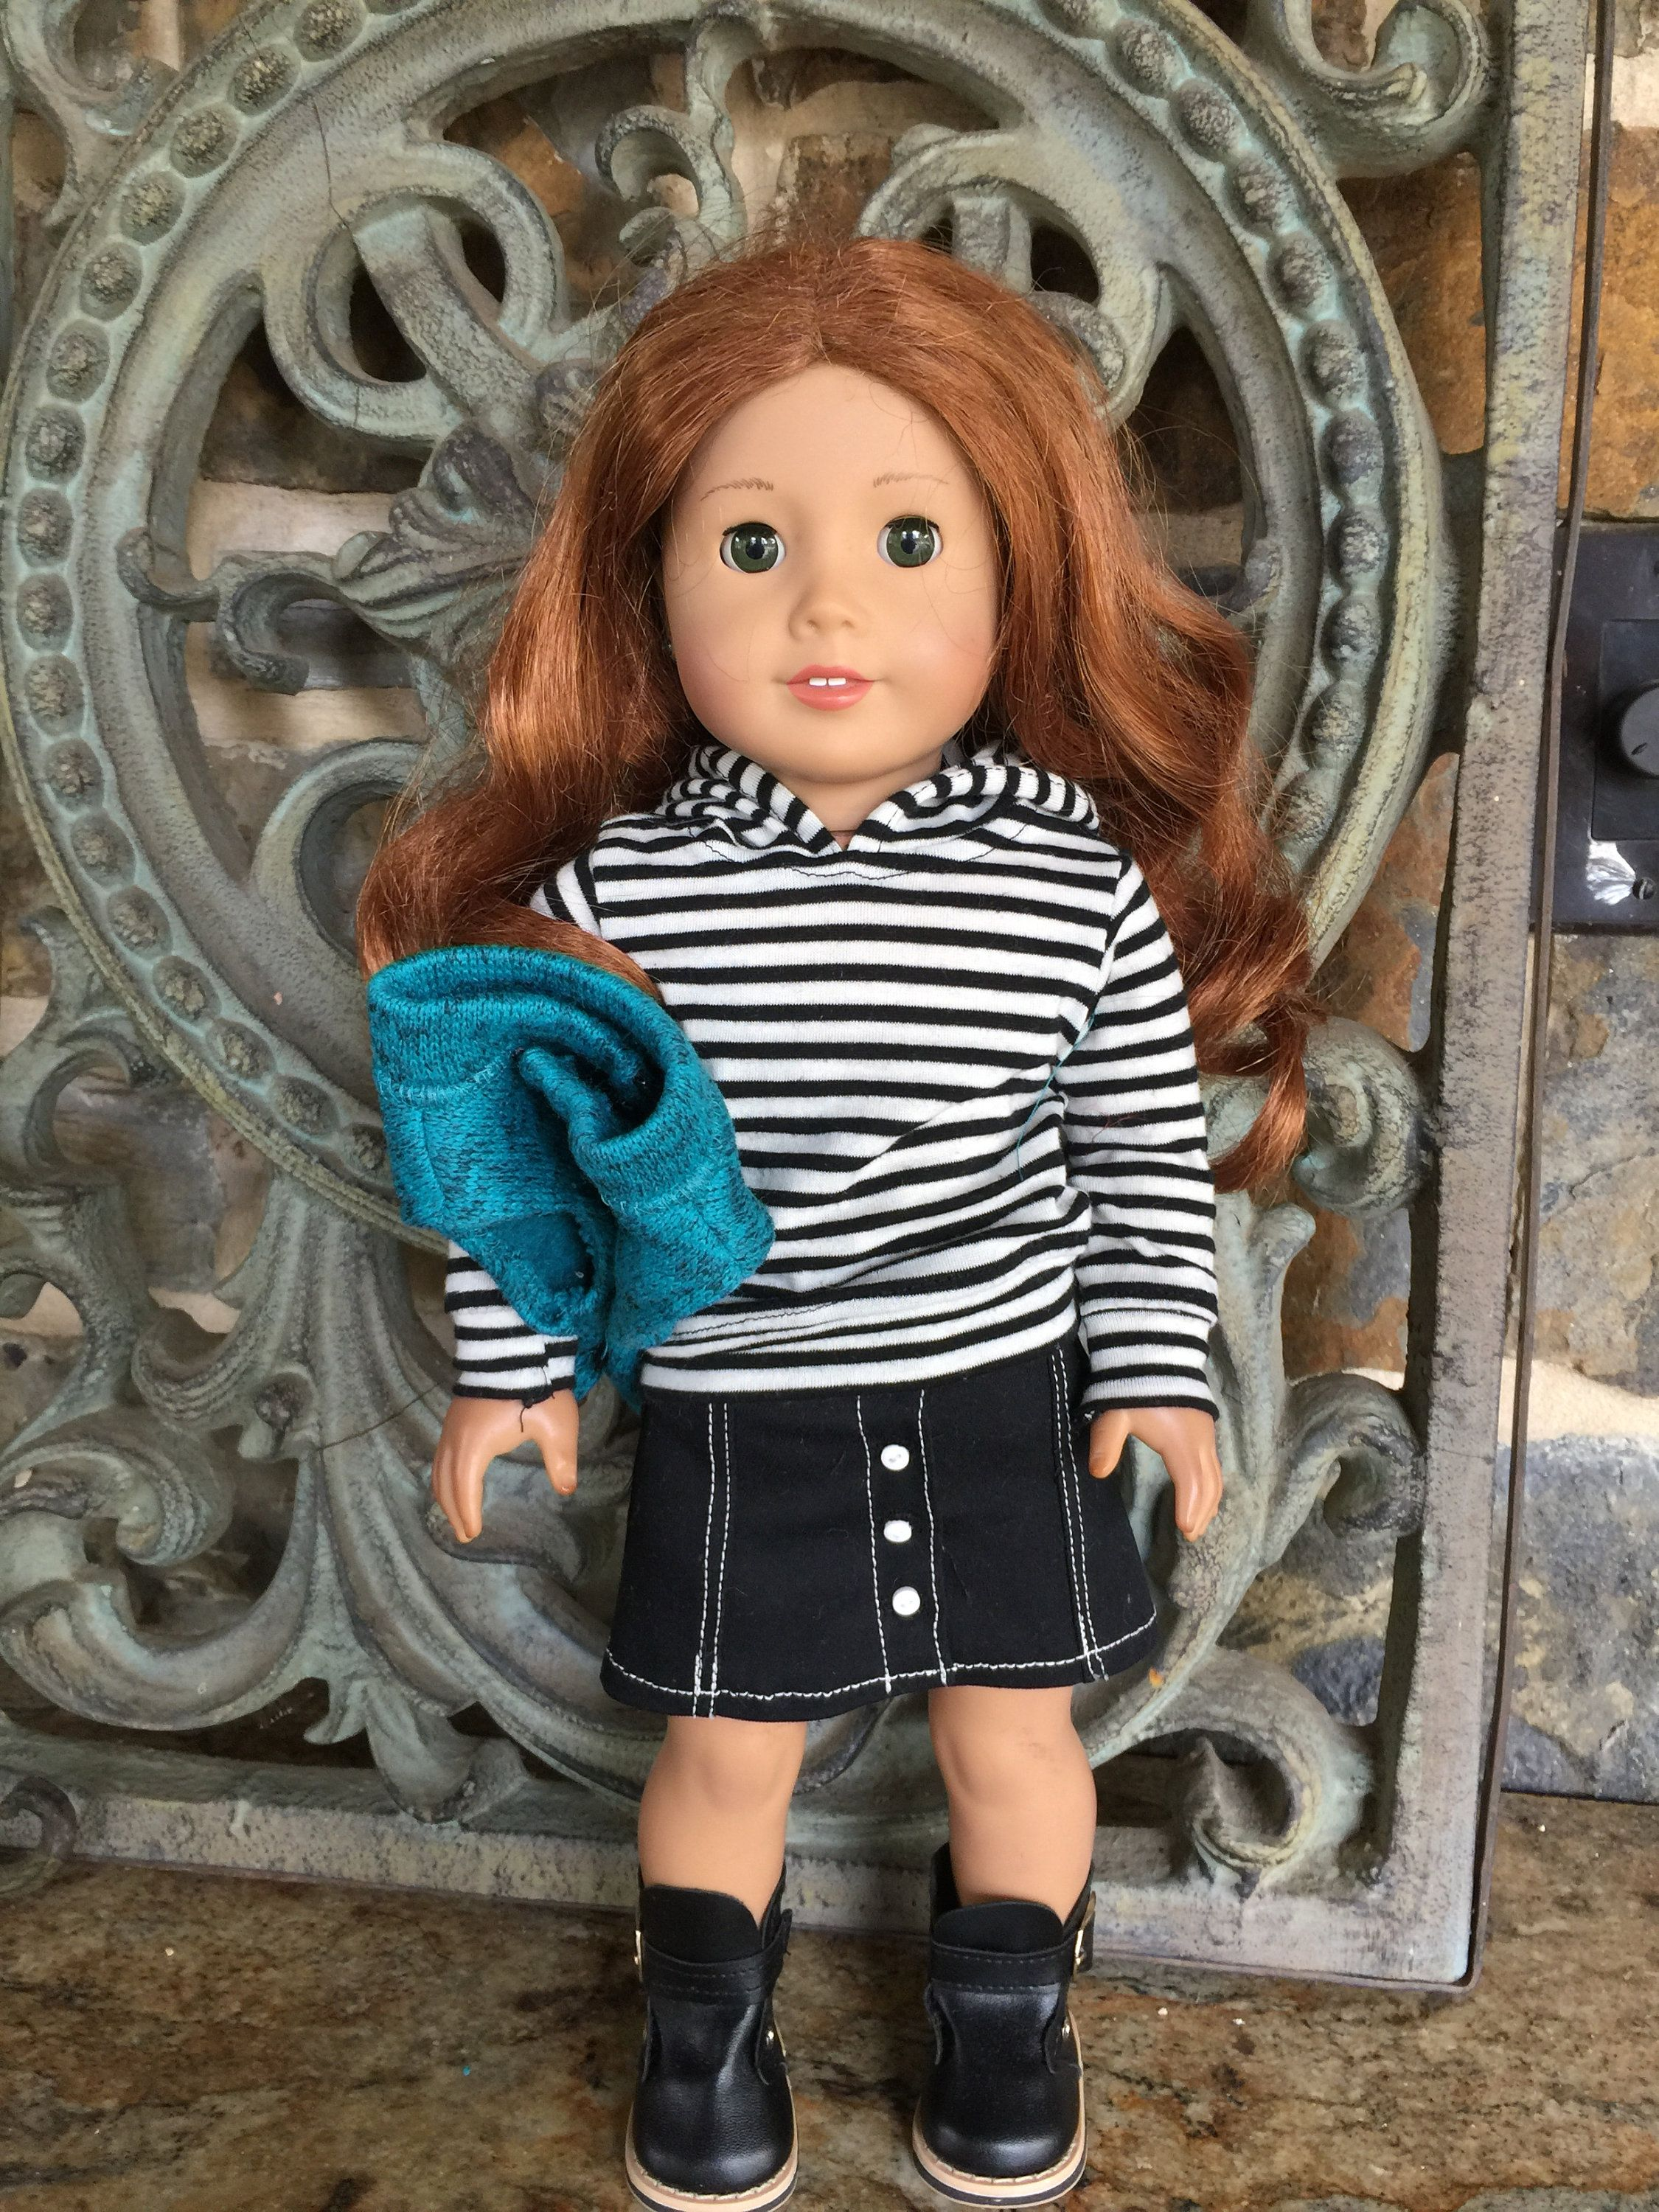 18 inch doll clothes made to fit dolls like the American Girl Doll- black and white stripe hoodie-zippered vest #18inchdollsandclothes